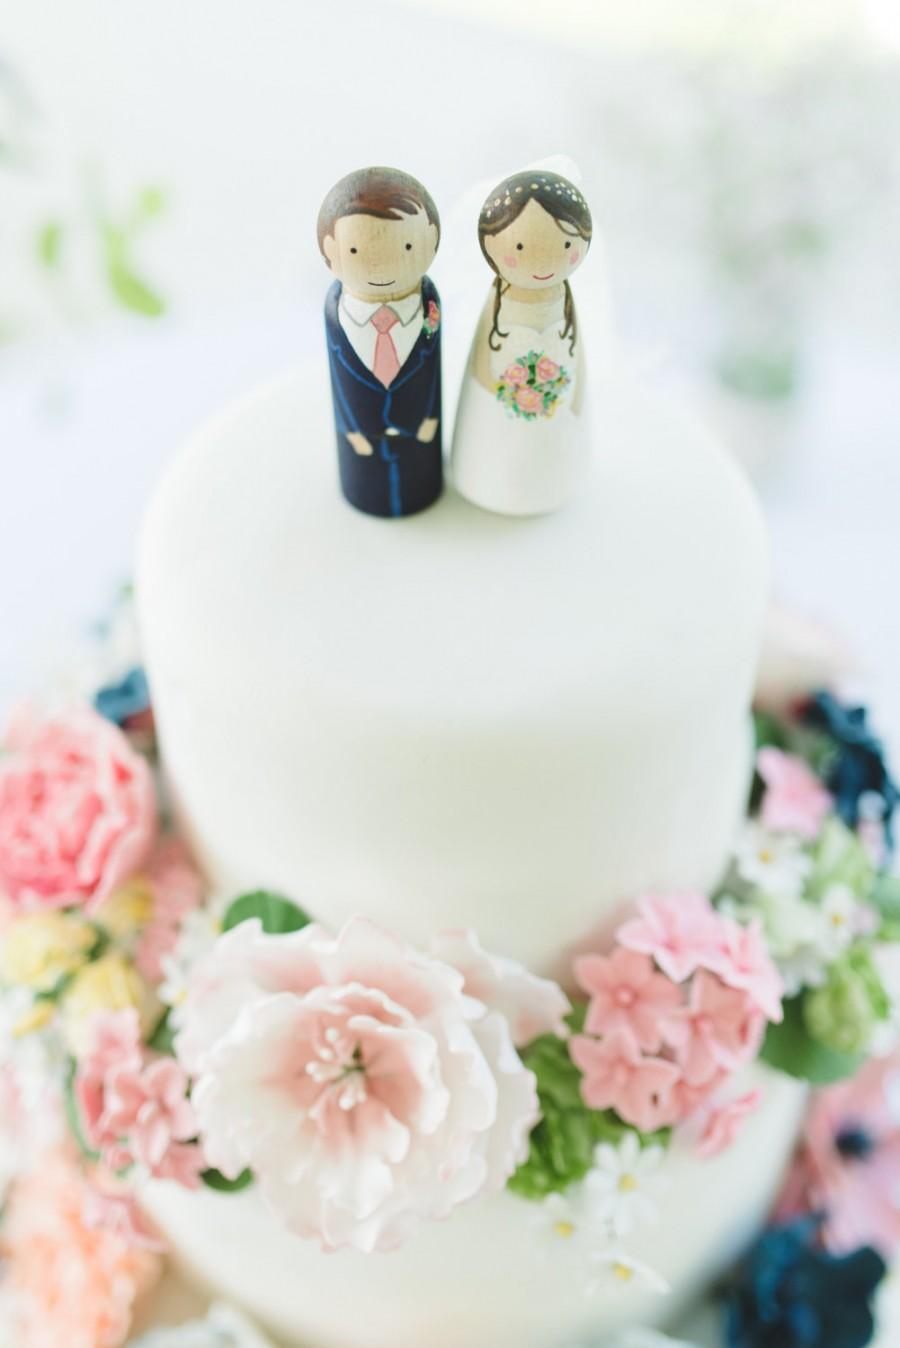 زفاف - Wedding Cake Toppers // Wooden Dolls // Cake toppers // Peg Dolls Custom Wedding Cake toppers